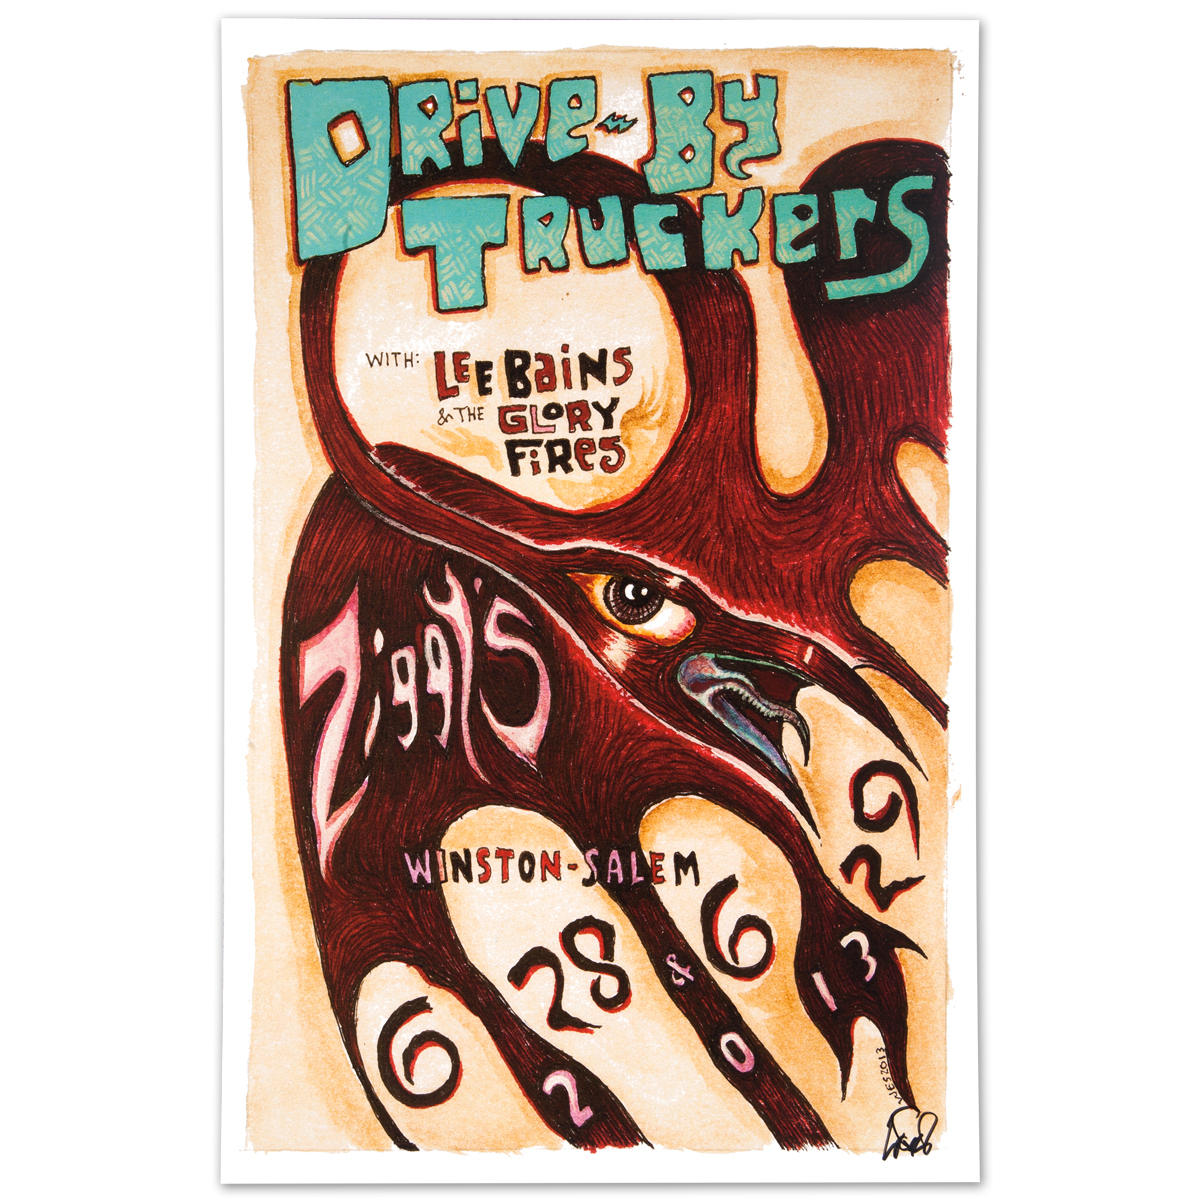 Drive-By Truckers - June 28-29, 2013 Winston-Salem, NC Poster